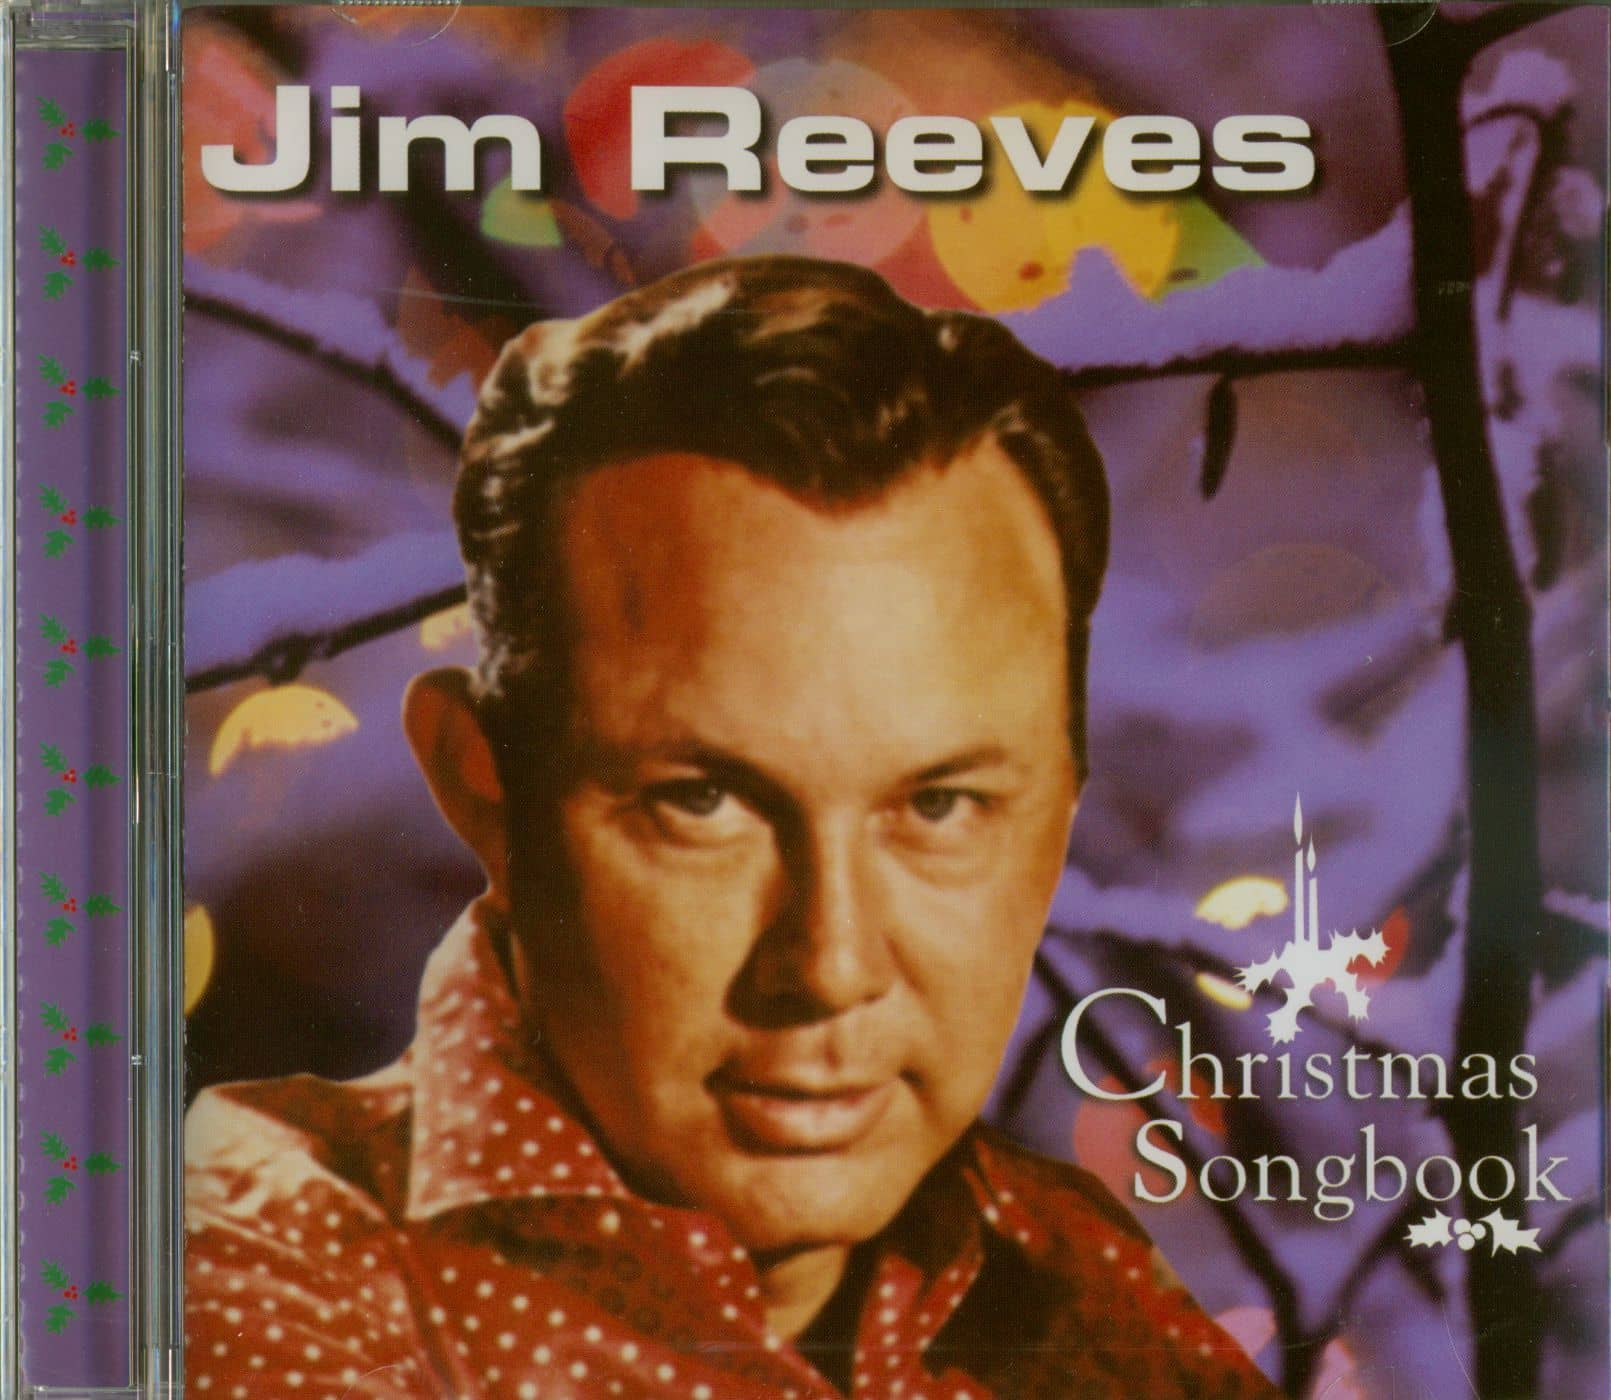 Jim Reeves CD: Christmas Songbook - Bear Family Records